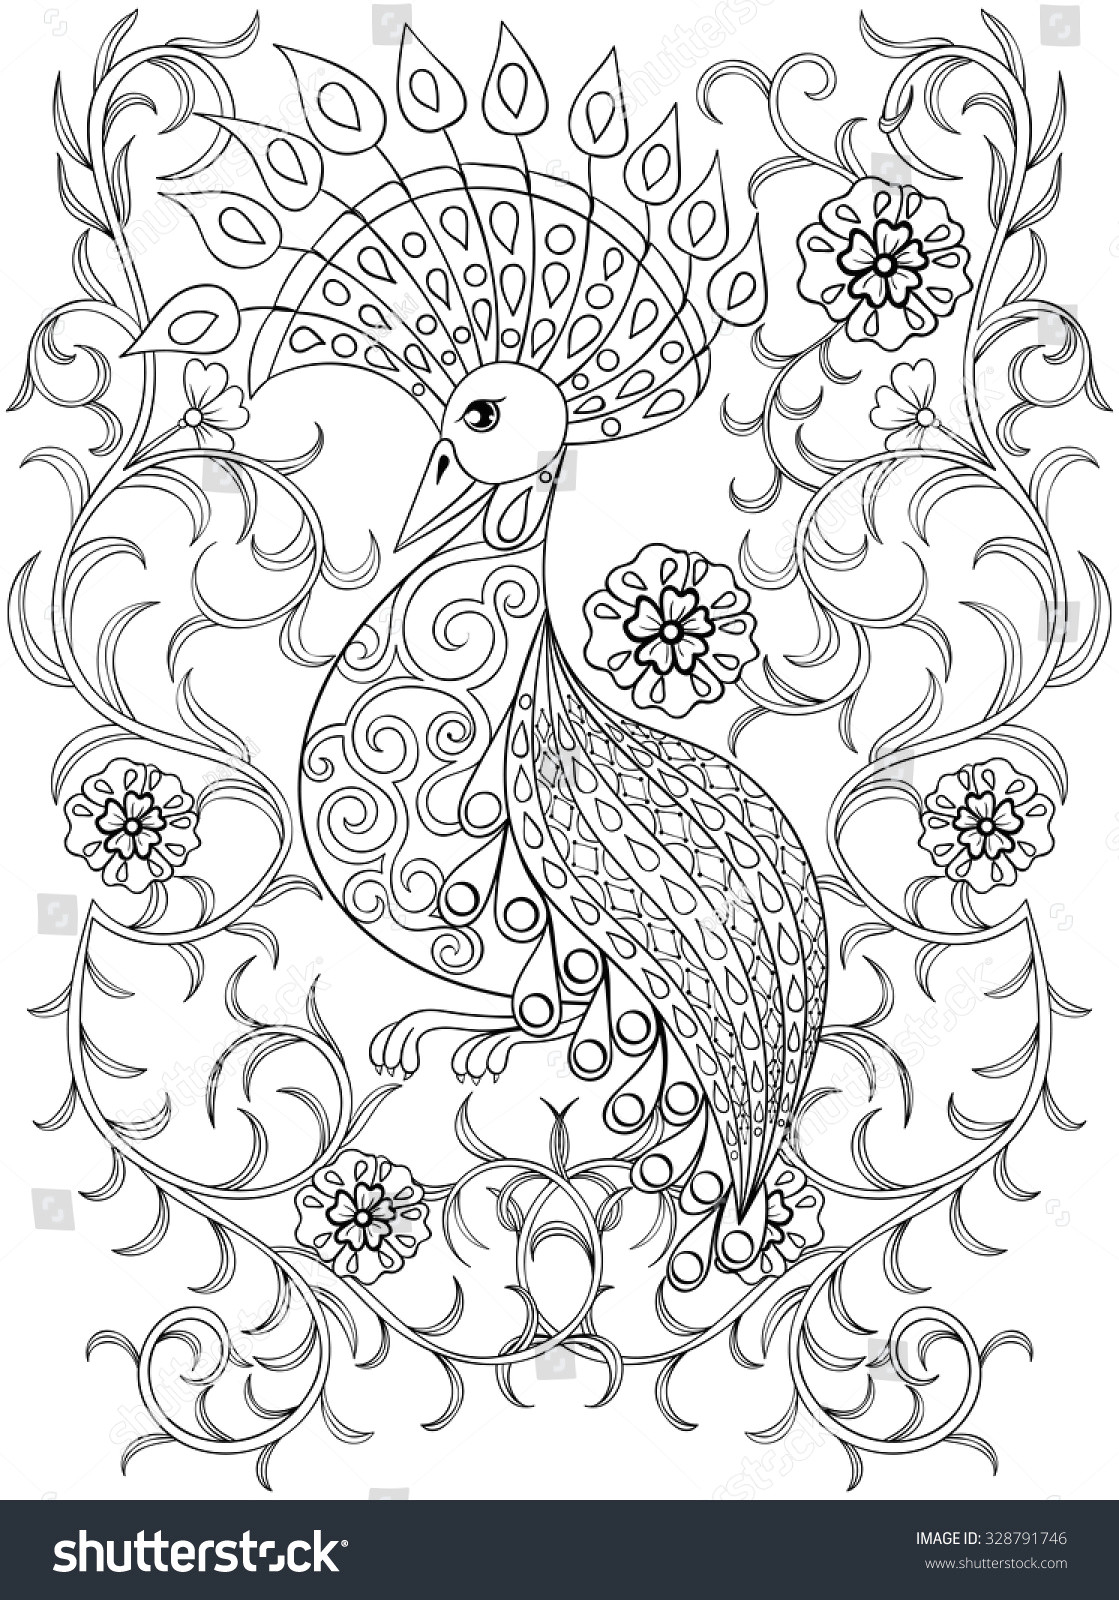 coloring page with bird in flowers zentangle illustartion bird for adult coloring books or tattoos